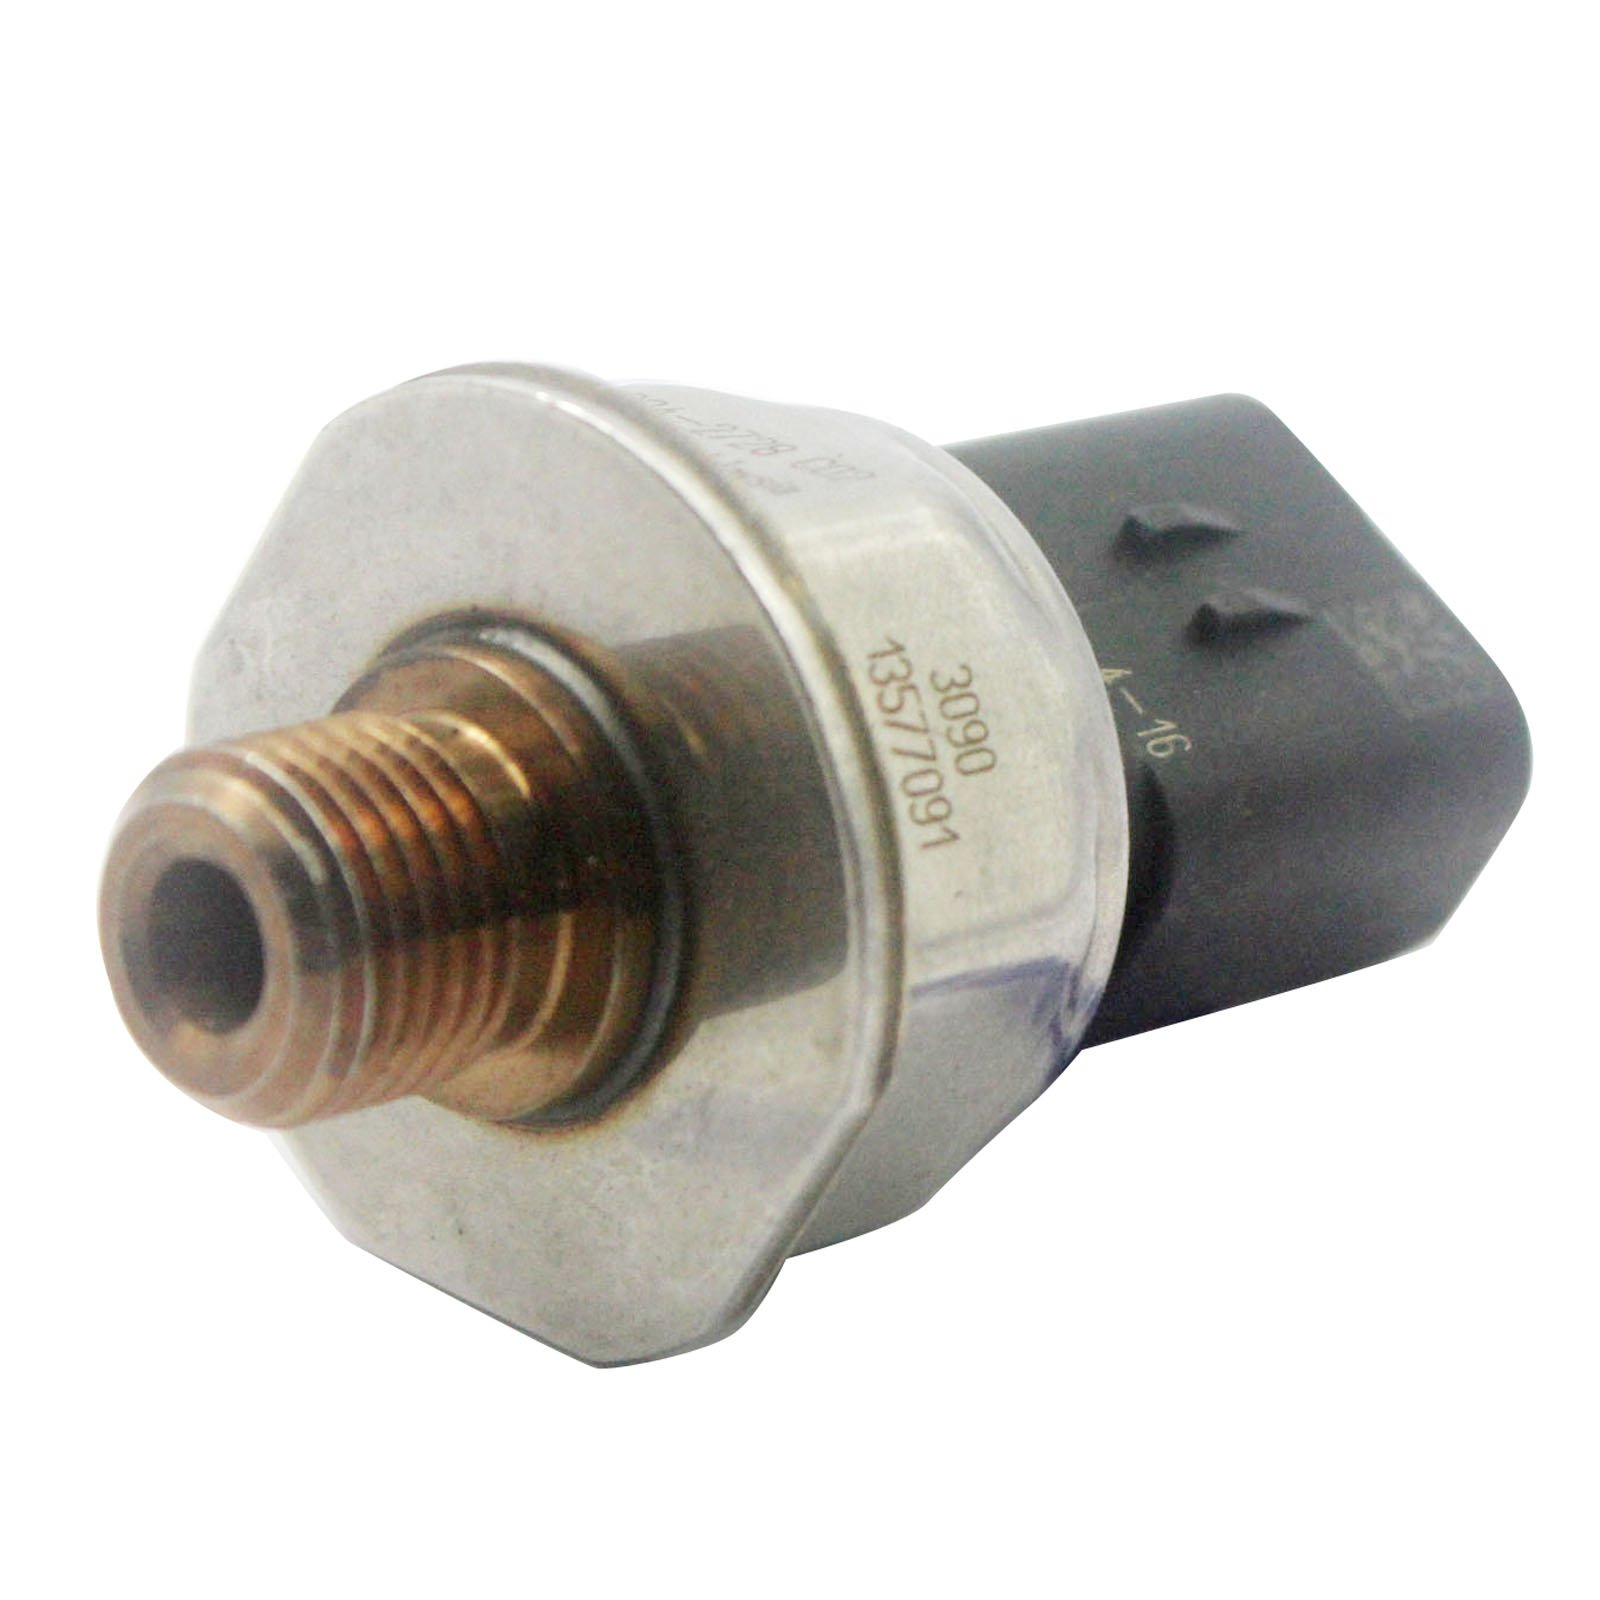 Cheap Oil Pressure Sensor, find Oil Pressure Sensor deals on